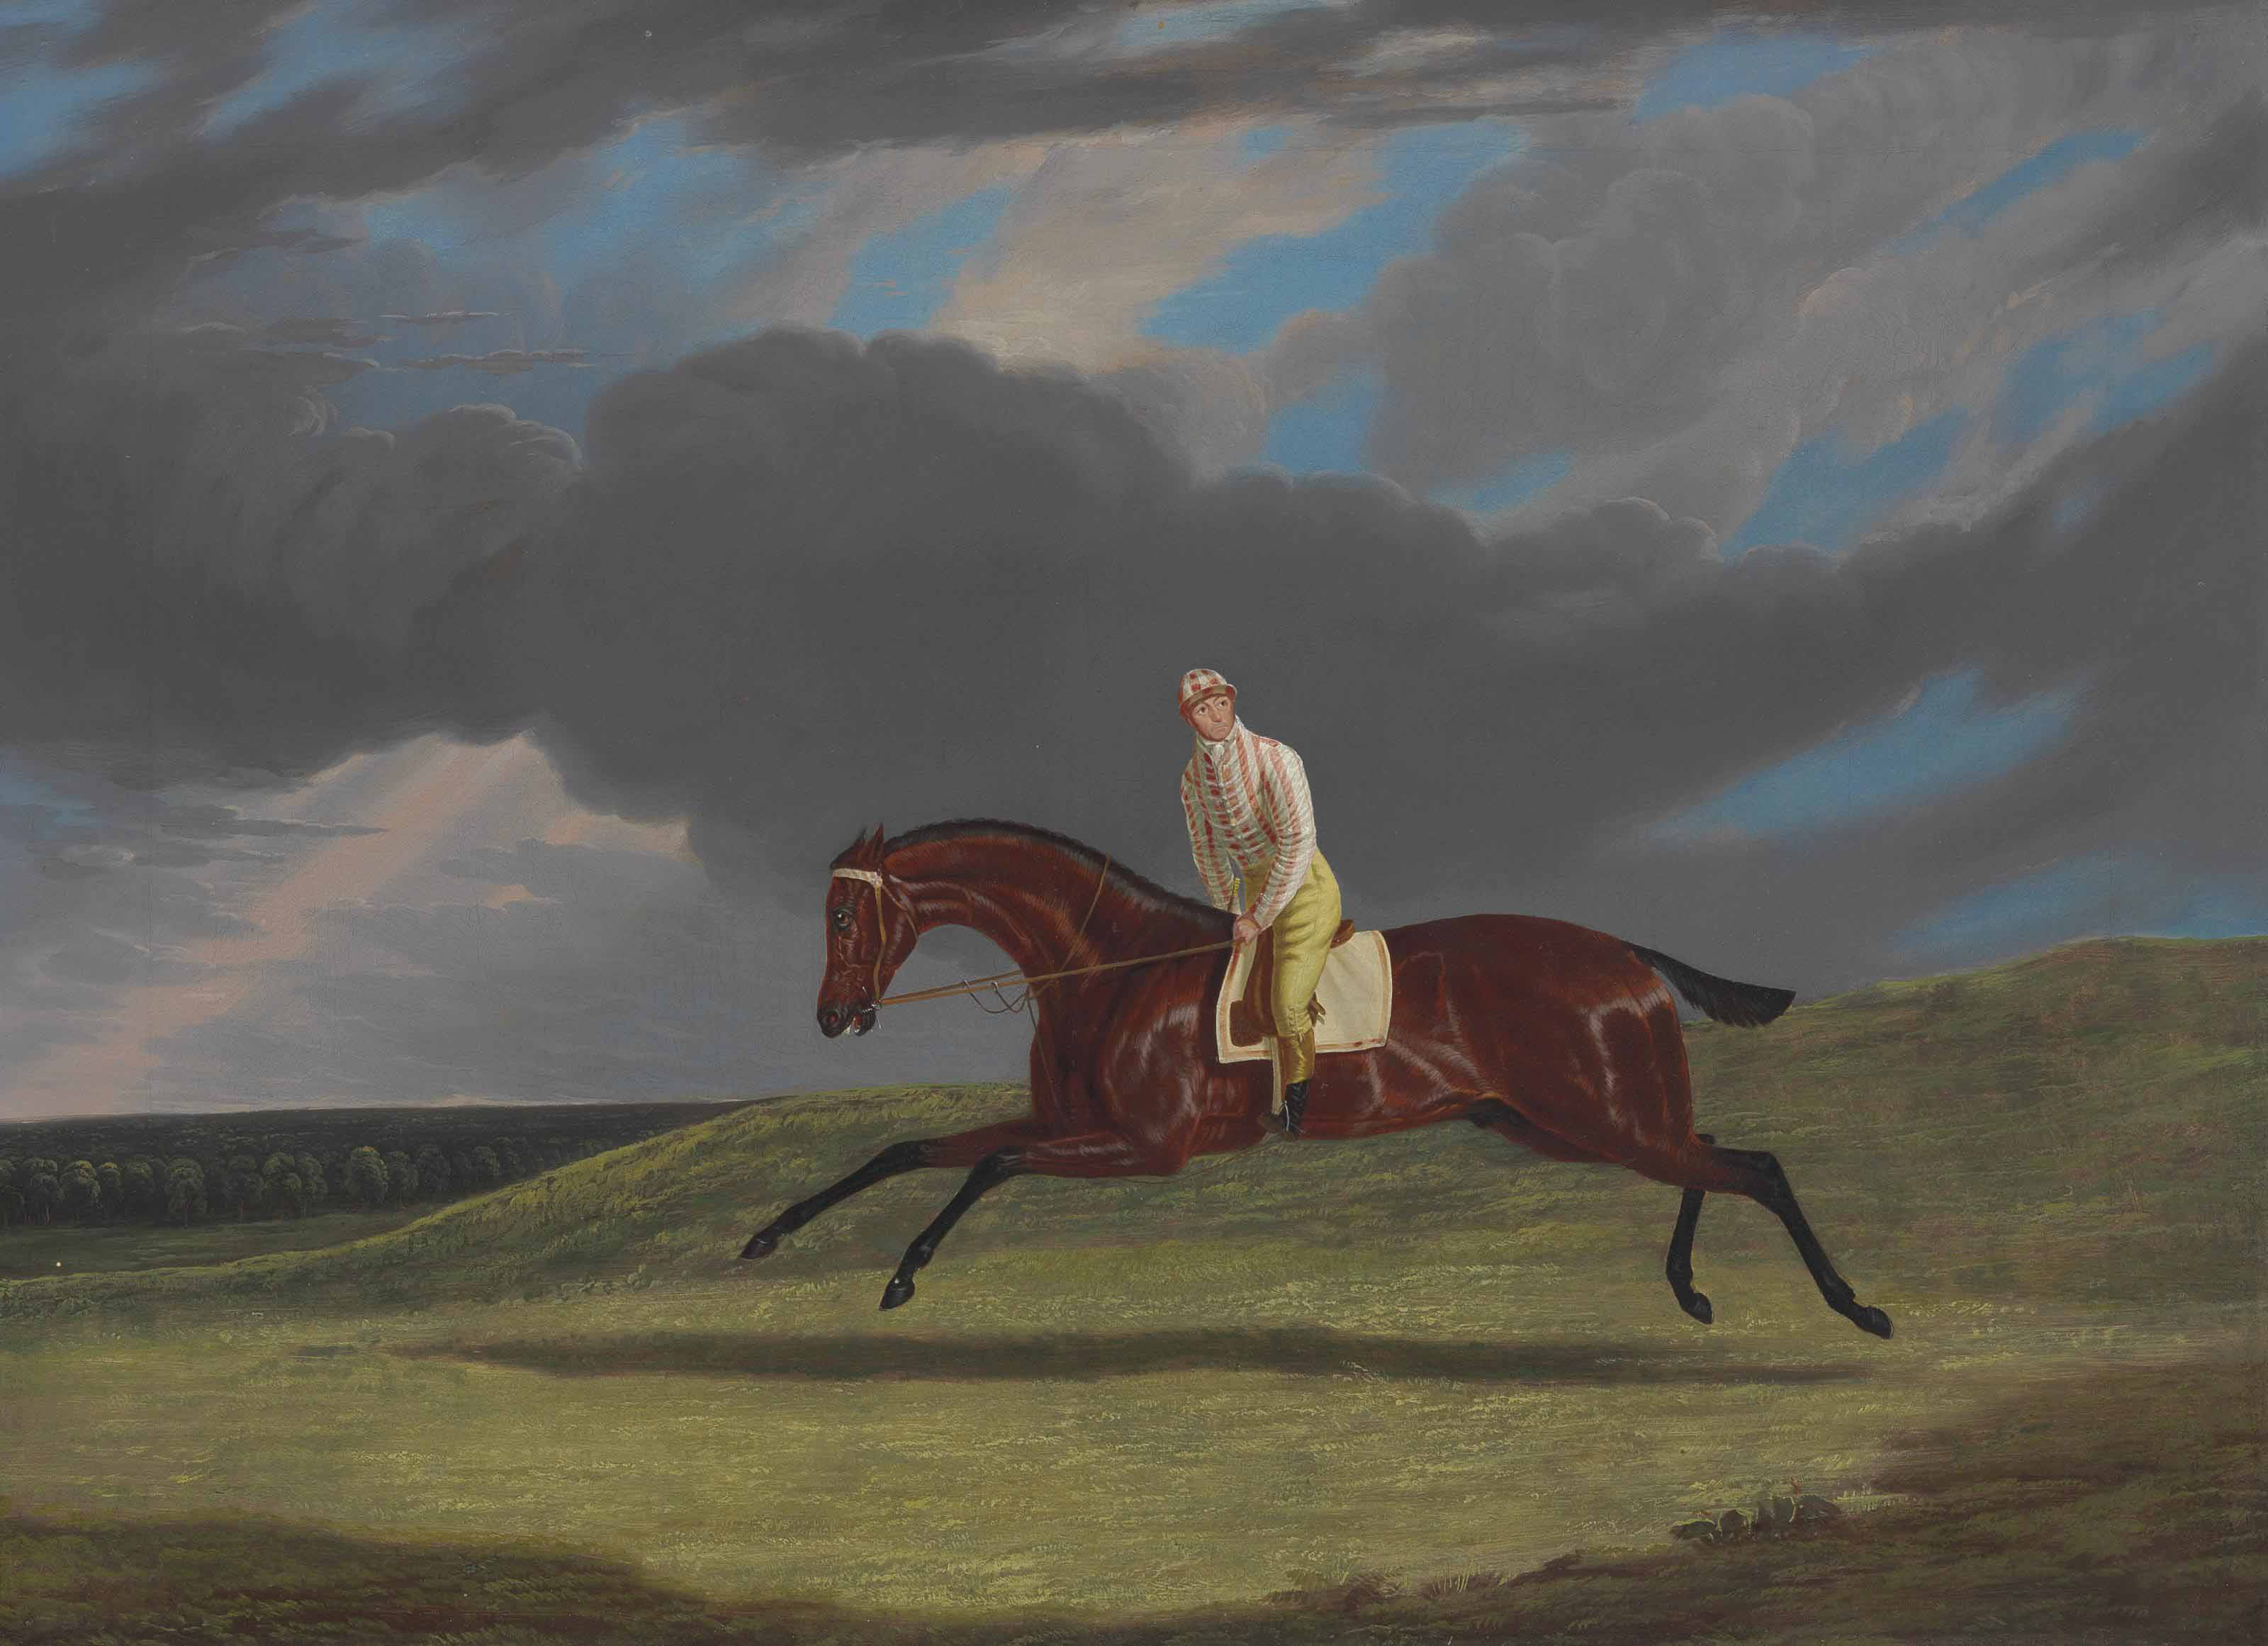 'Corduroy,' a Bay Racehorse, with a Jockey up, Galloping on a Racecourse